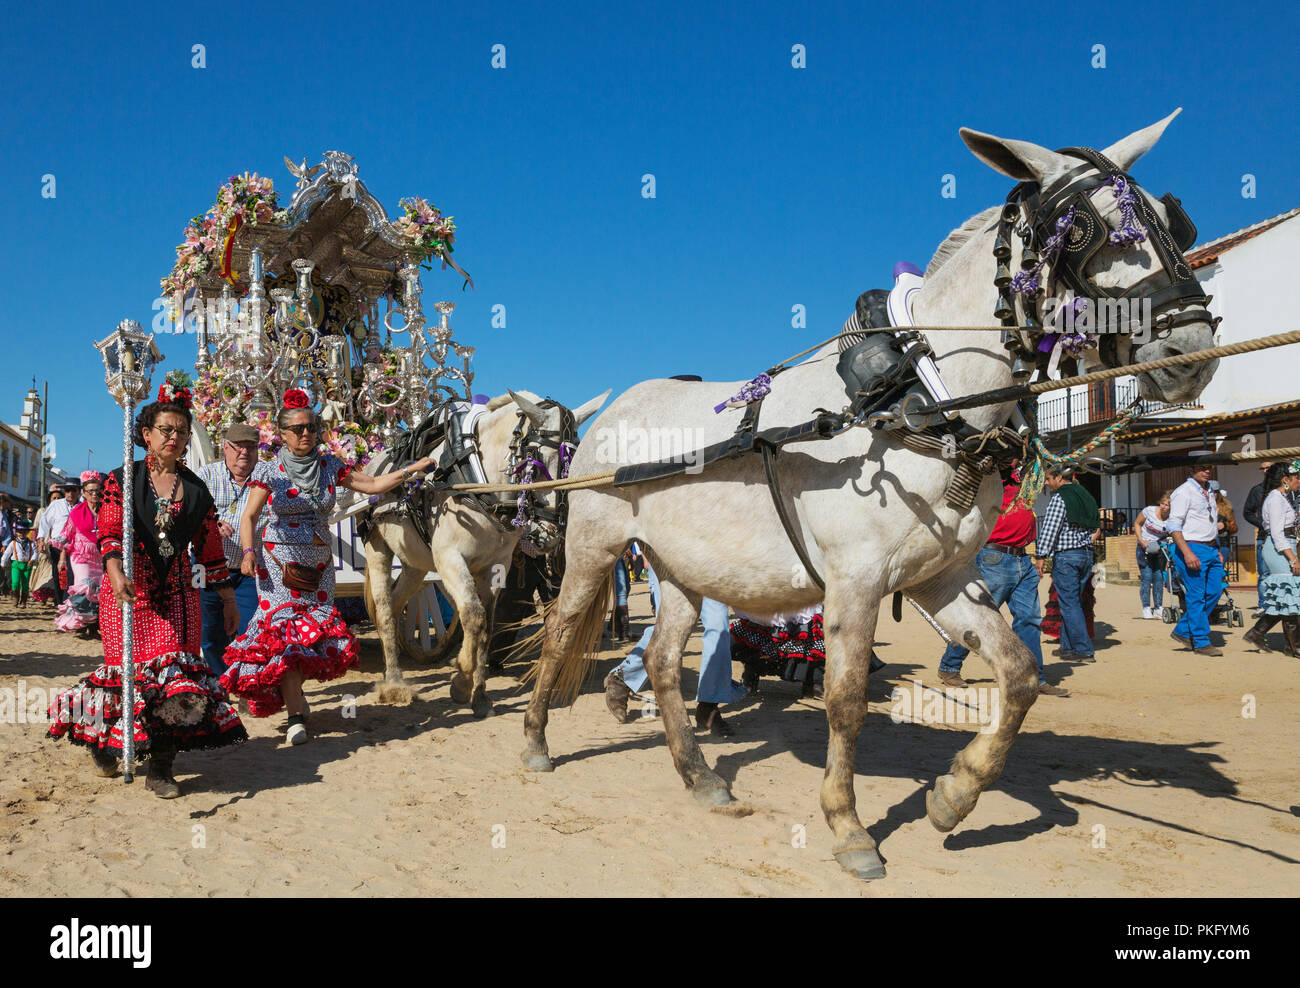 Women wearing colourful gypsy dresses besides a decorated carriage, Pentecost pilgrimage of El Rocio, Huelva province, Andalusia - Stock Image